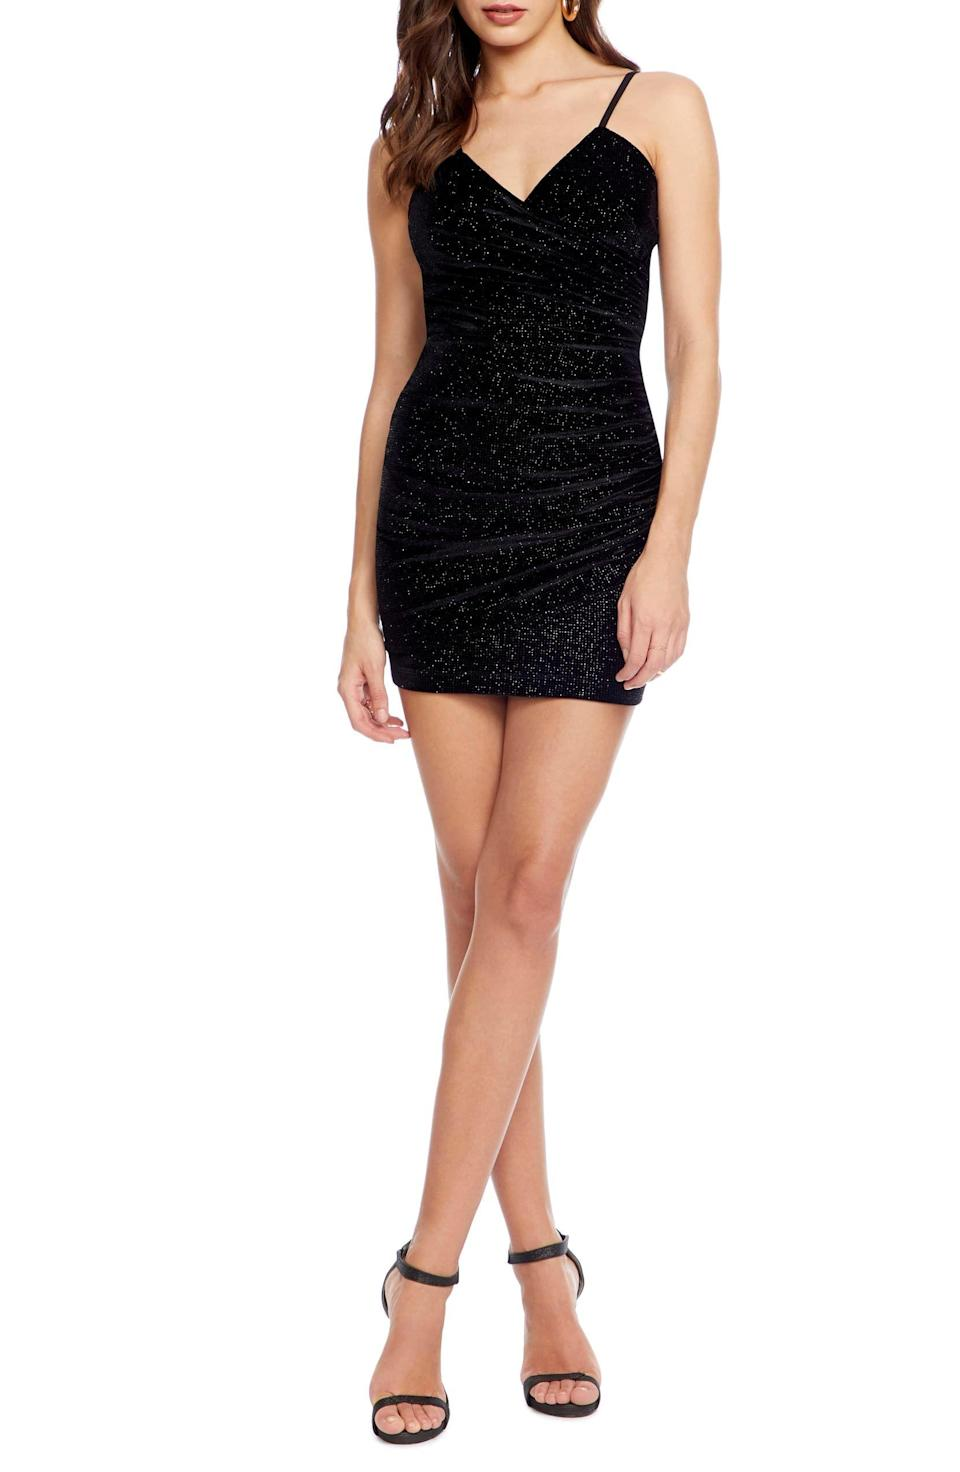 """<p><strong>COSMOPOLITAN DRESS THE POPULATION</strong></p><p>nordstrom.com</p><p><strong>$48.98</strong></p><p><a href=""""https://go.redirectingat.com?id=74968X1596630&url=https%3A%2F%2Fshop.nordstrom.com%2Fs%2Fcosmopolitan-dress-the-population-xoxo-ruched-body-con-minidress%2F5423158&sref=http%3A%2F%2Fwww.cosmopolitan.com%2Fstyle-beauty%2Ffashion%2Fg30057282%2Fshop-nordstrom-black-friday-cyber-monday-sale-2019%2F"""" rel=""""nofollow noopener"""" target=""""_blank"""" data-ylk=""""slk:Shop Now"""" class=""""link rapid-noclick-resp"""">Shop Now</a></p><p>If you've been searching for that perfect New Year's Eve dress, a velvet mini with ruching and subtle sparkles might be right up your alley. </p>"""